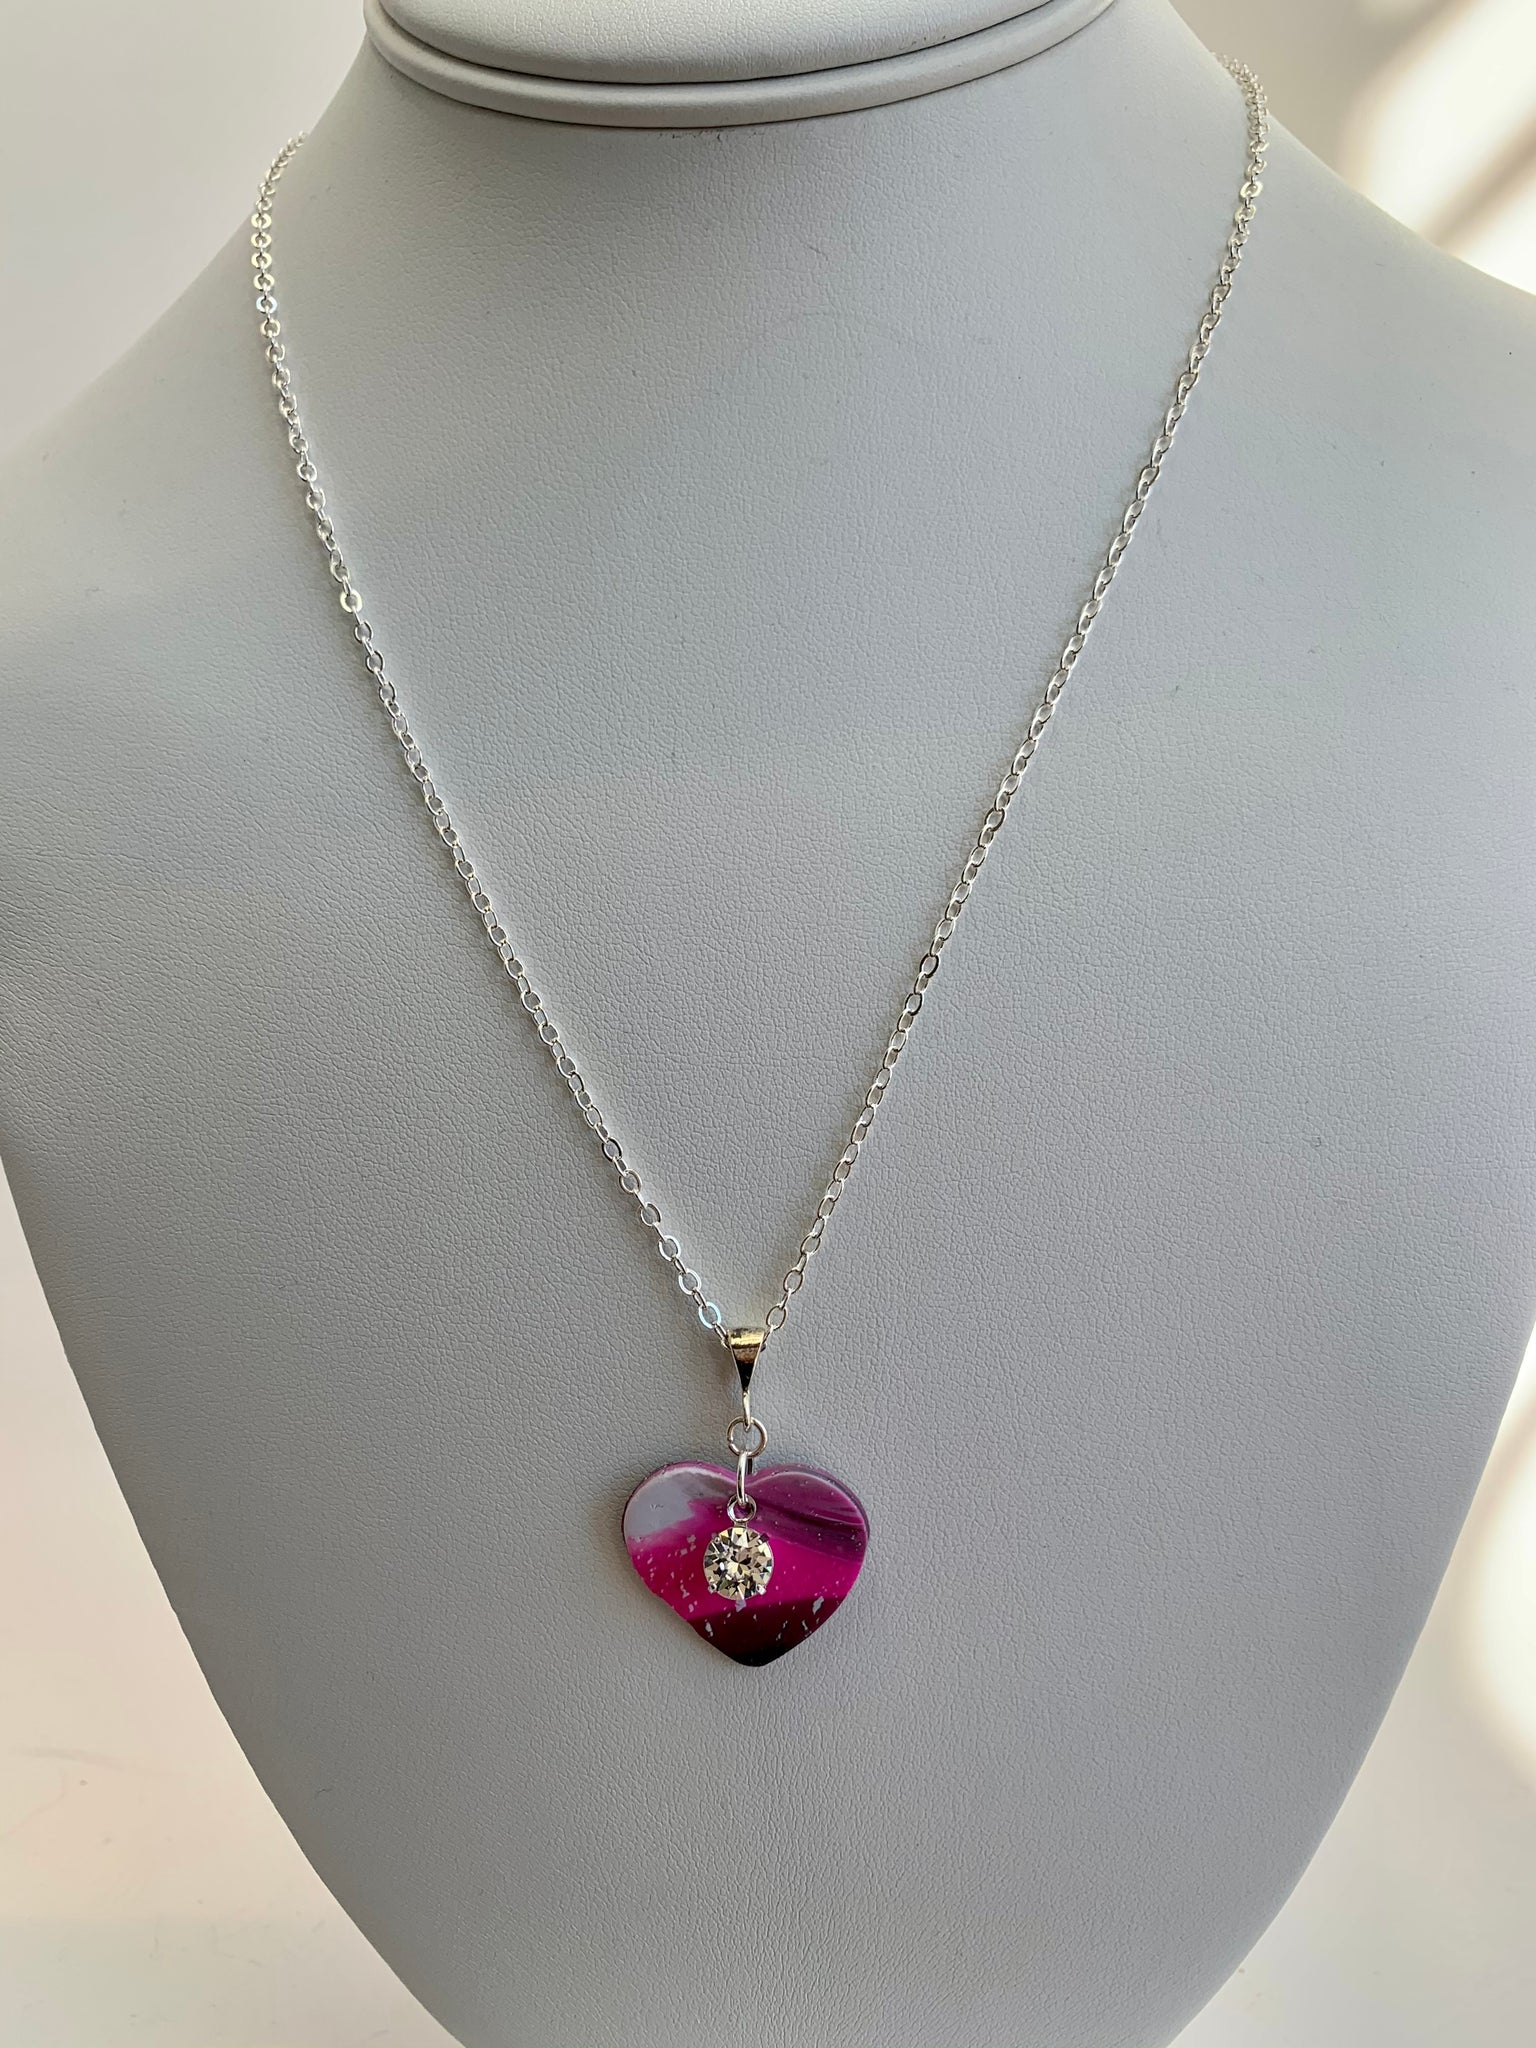 Single Heart Necklace